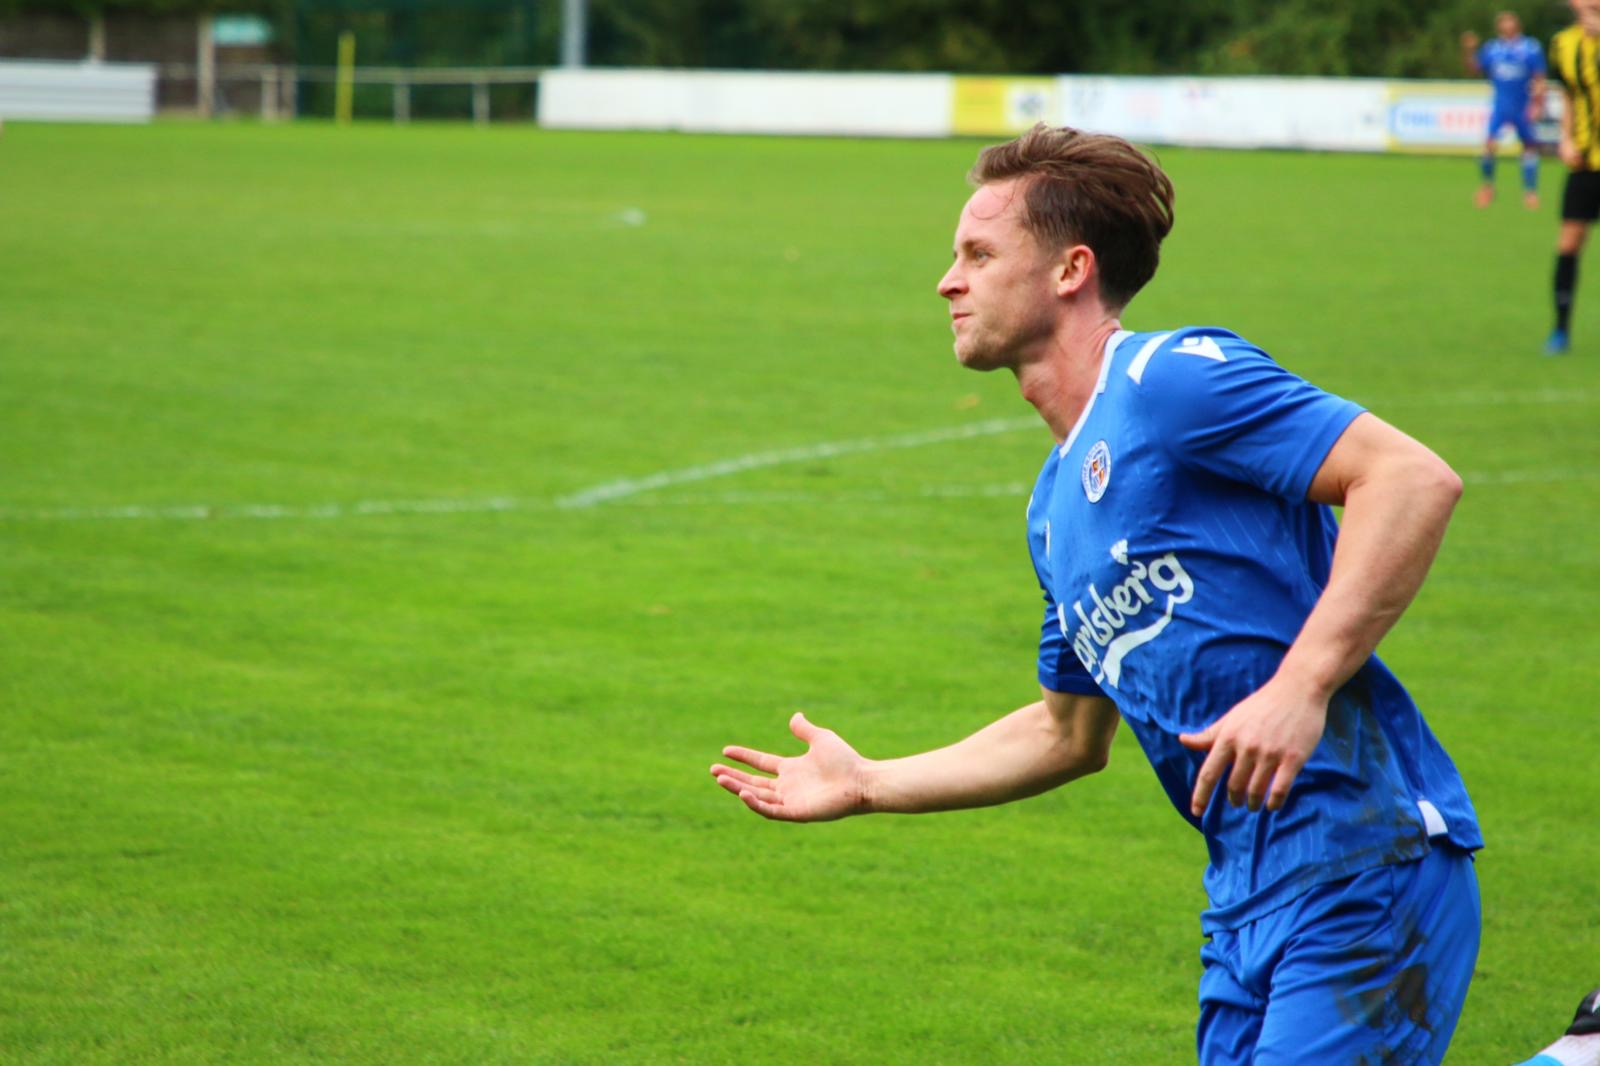 Cheadle Heath vs Wythenshawe Town Preview